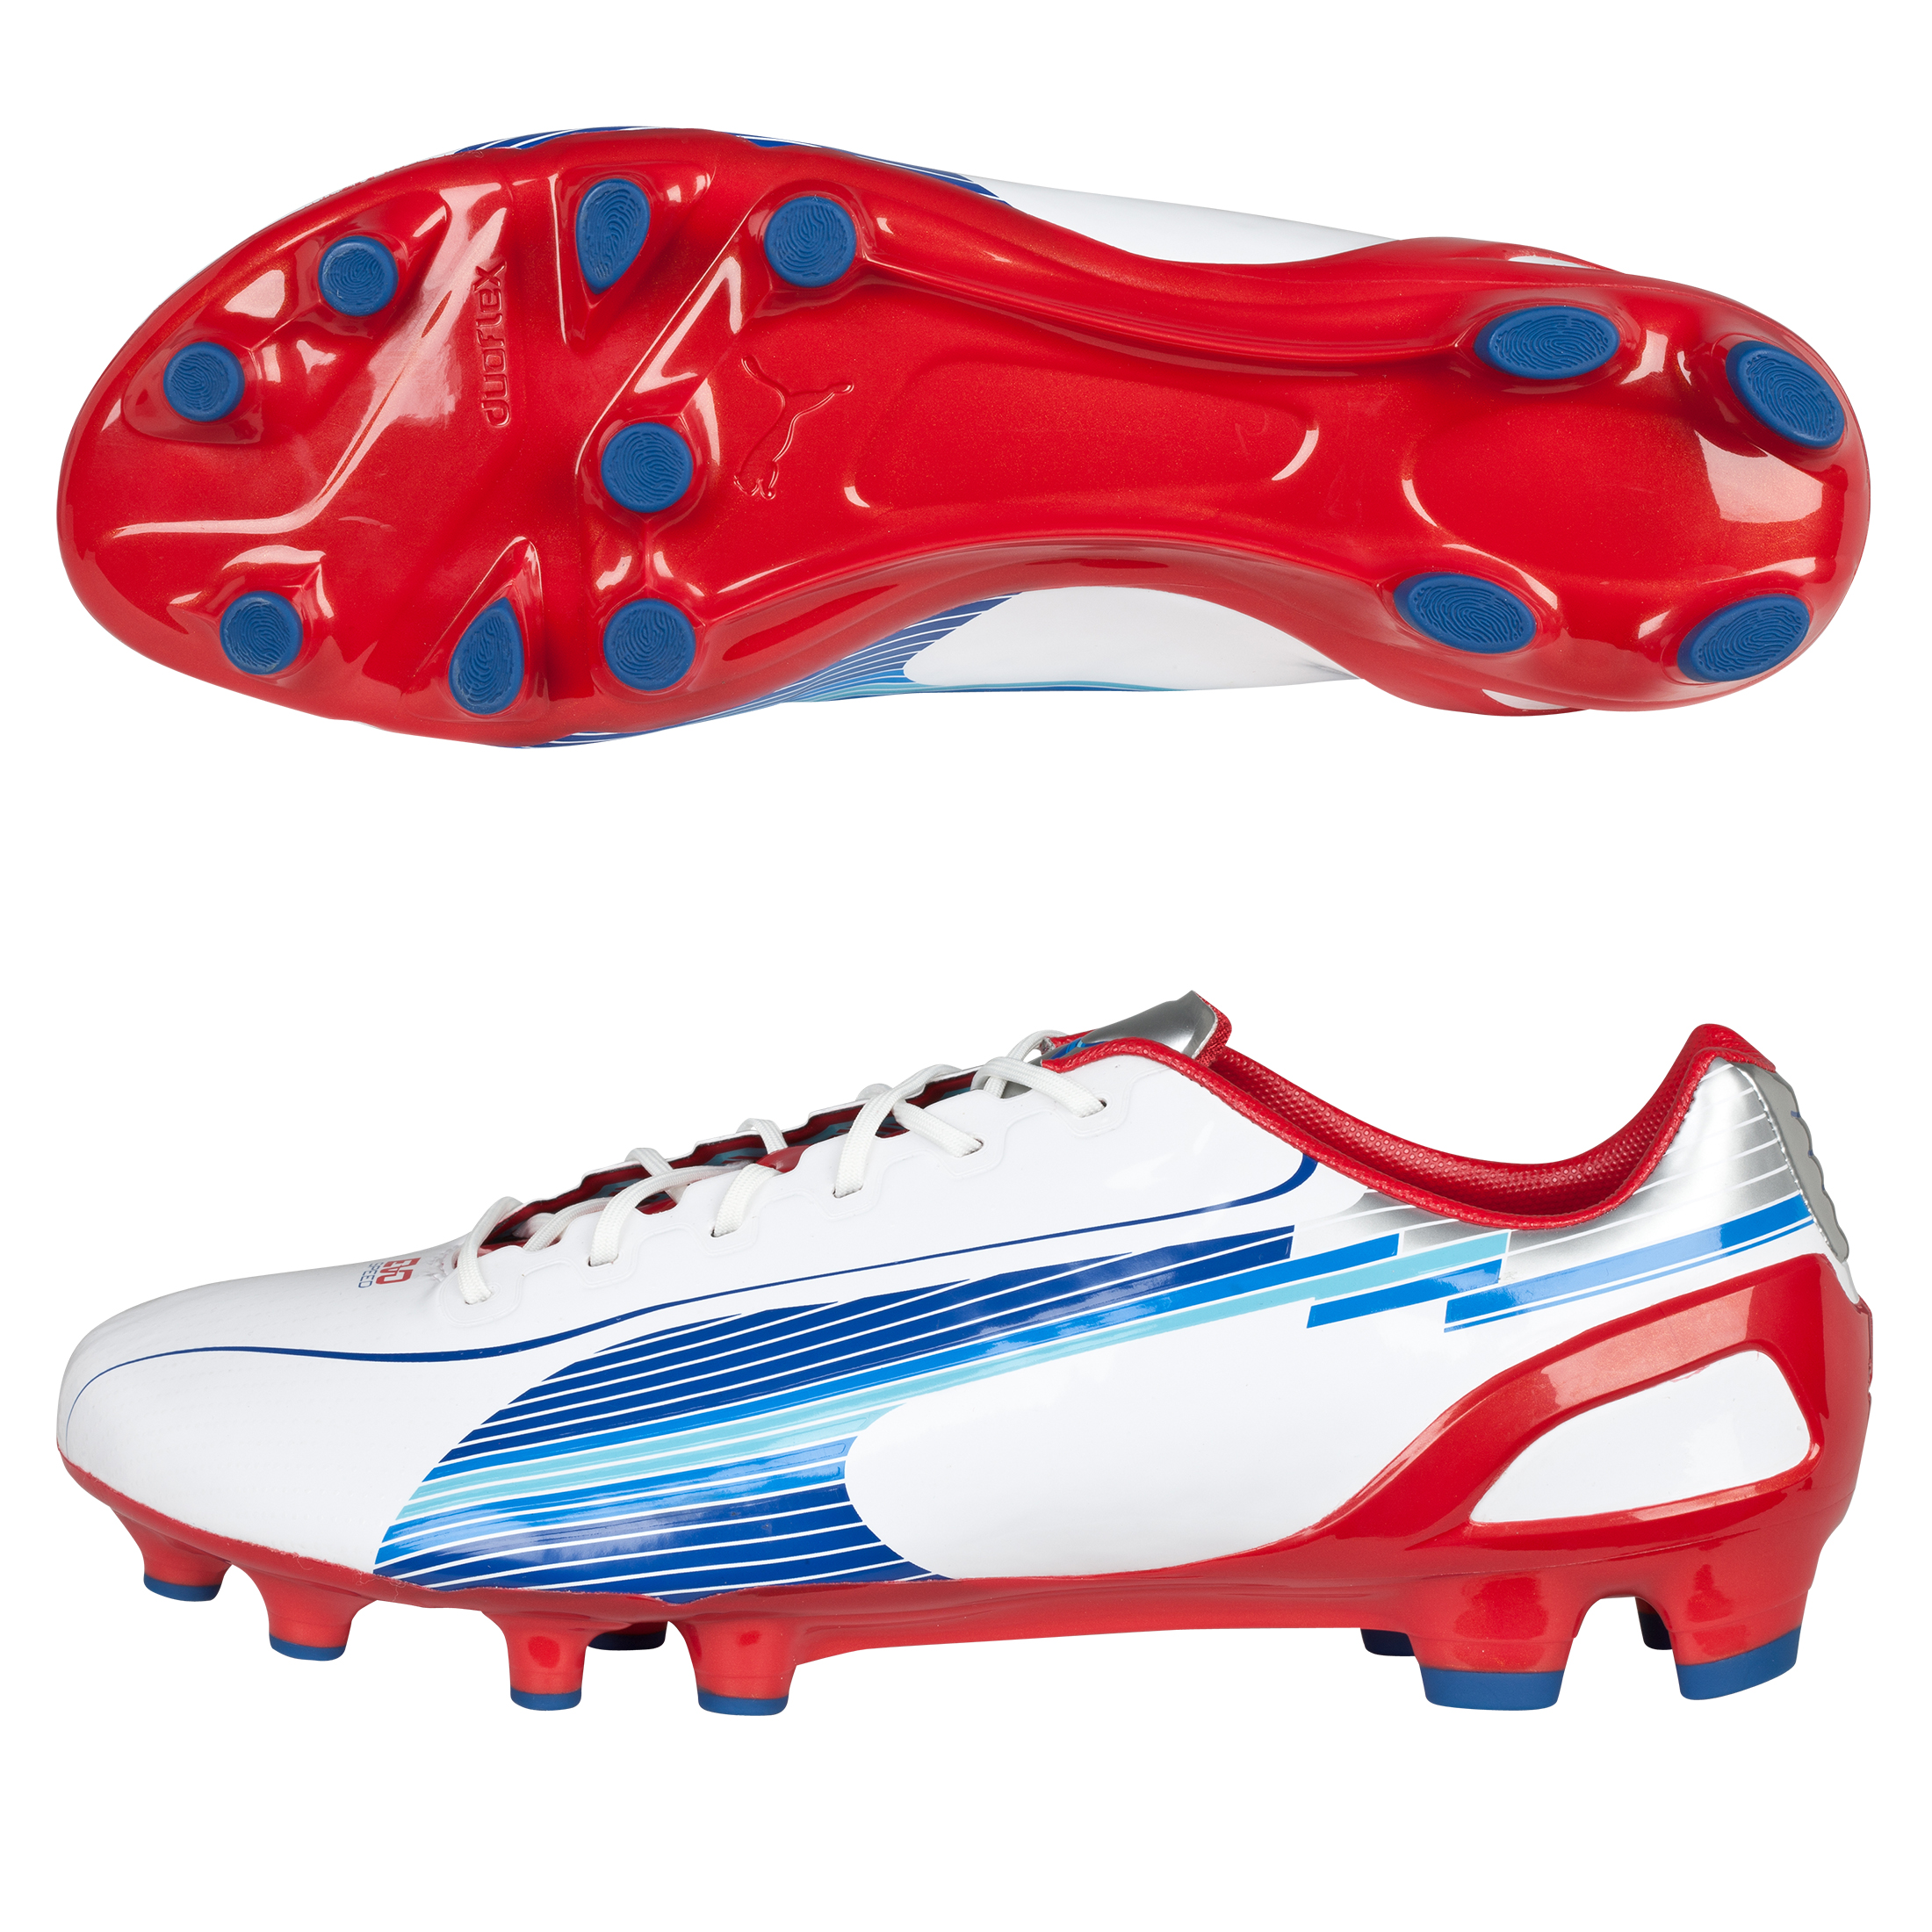 Puma Evospeed 1 Firm Ground Football Boots - White-Limoges-Ribbon Red